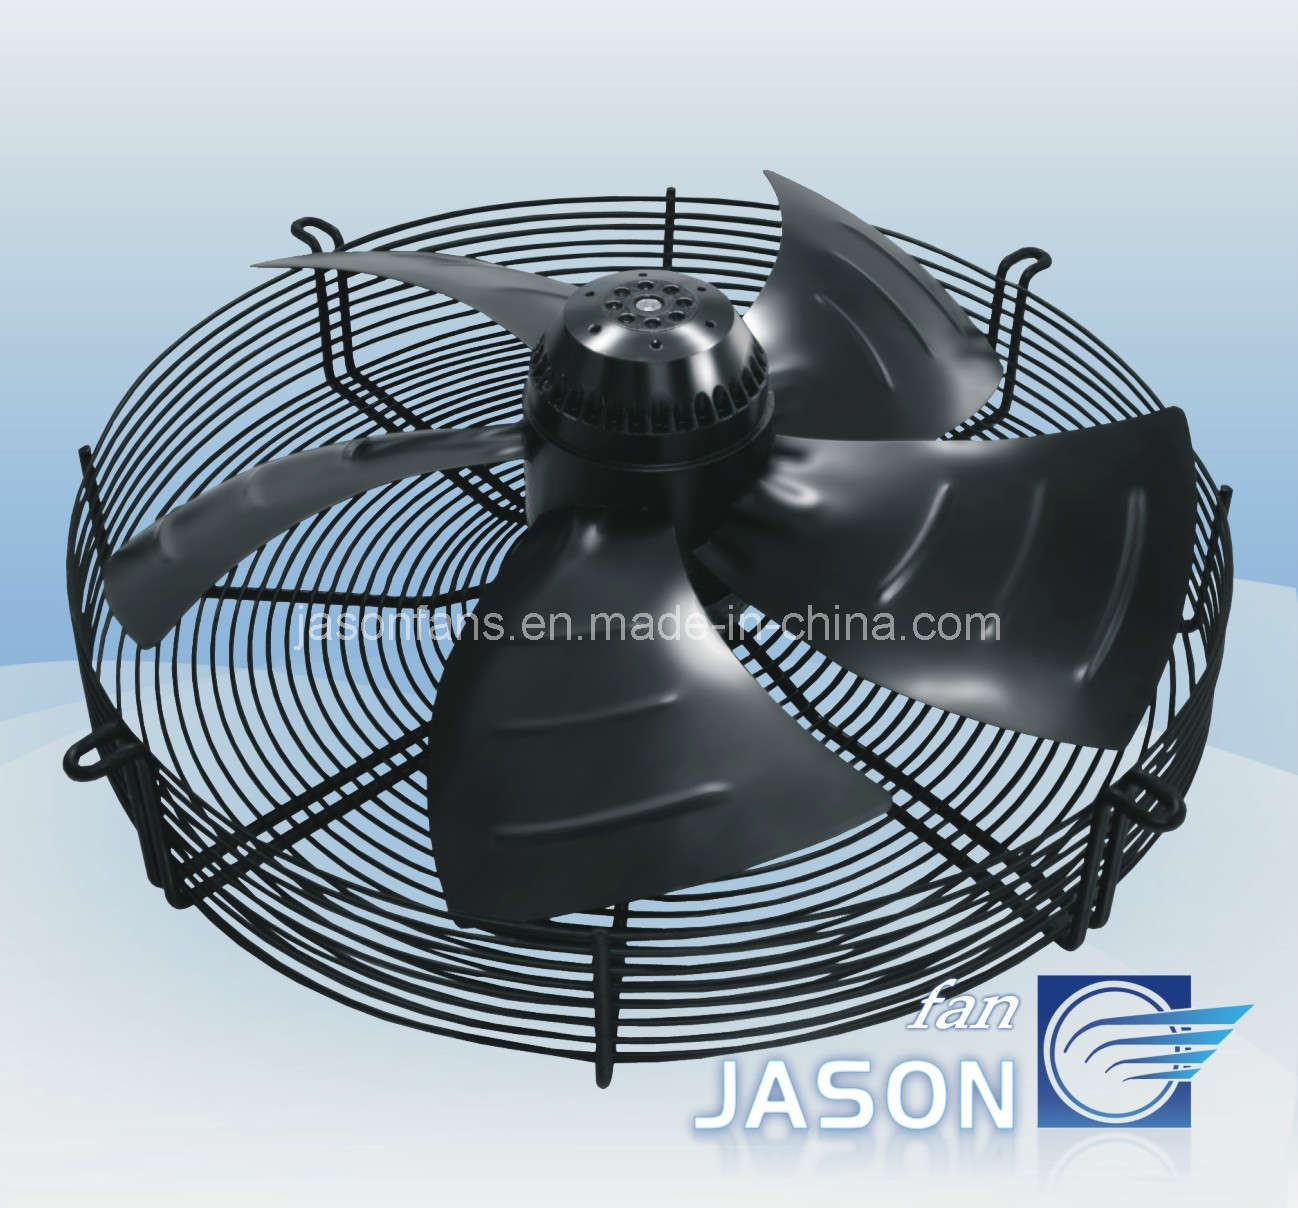 China Ac External Rotor Motor Industrial Condenser Cooling Fans Fj4e 630 Photos Pictures